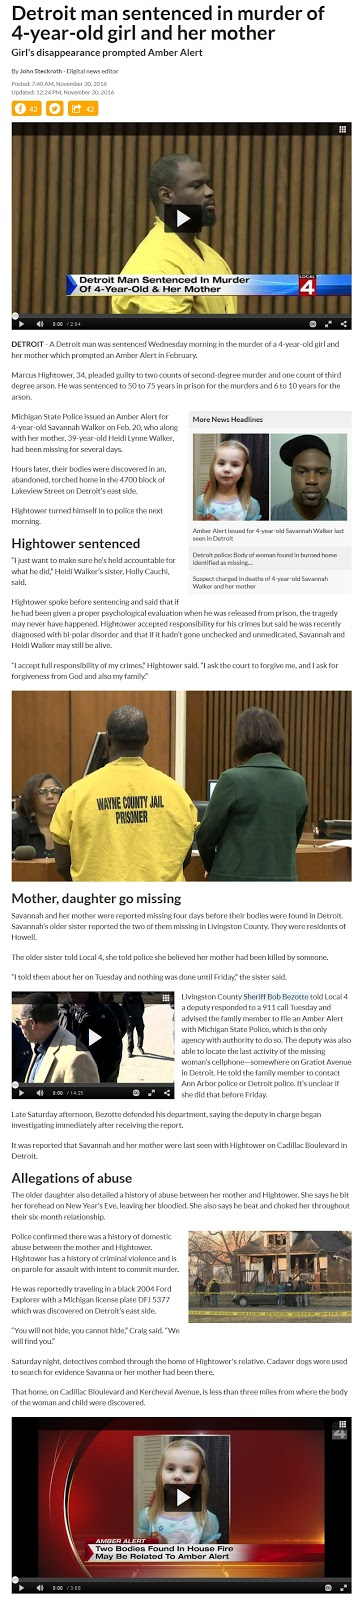 MI; black ex con murders white ex, 4-yo daughter - sentenced - Savannah, Heidi Walker (11-30-16) (1)